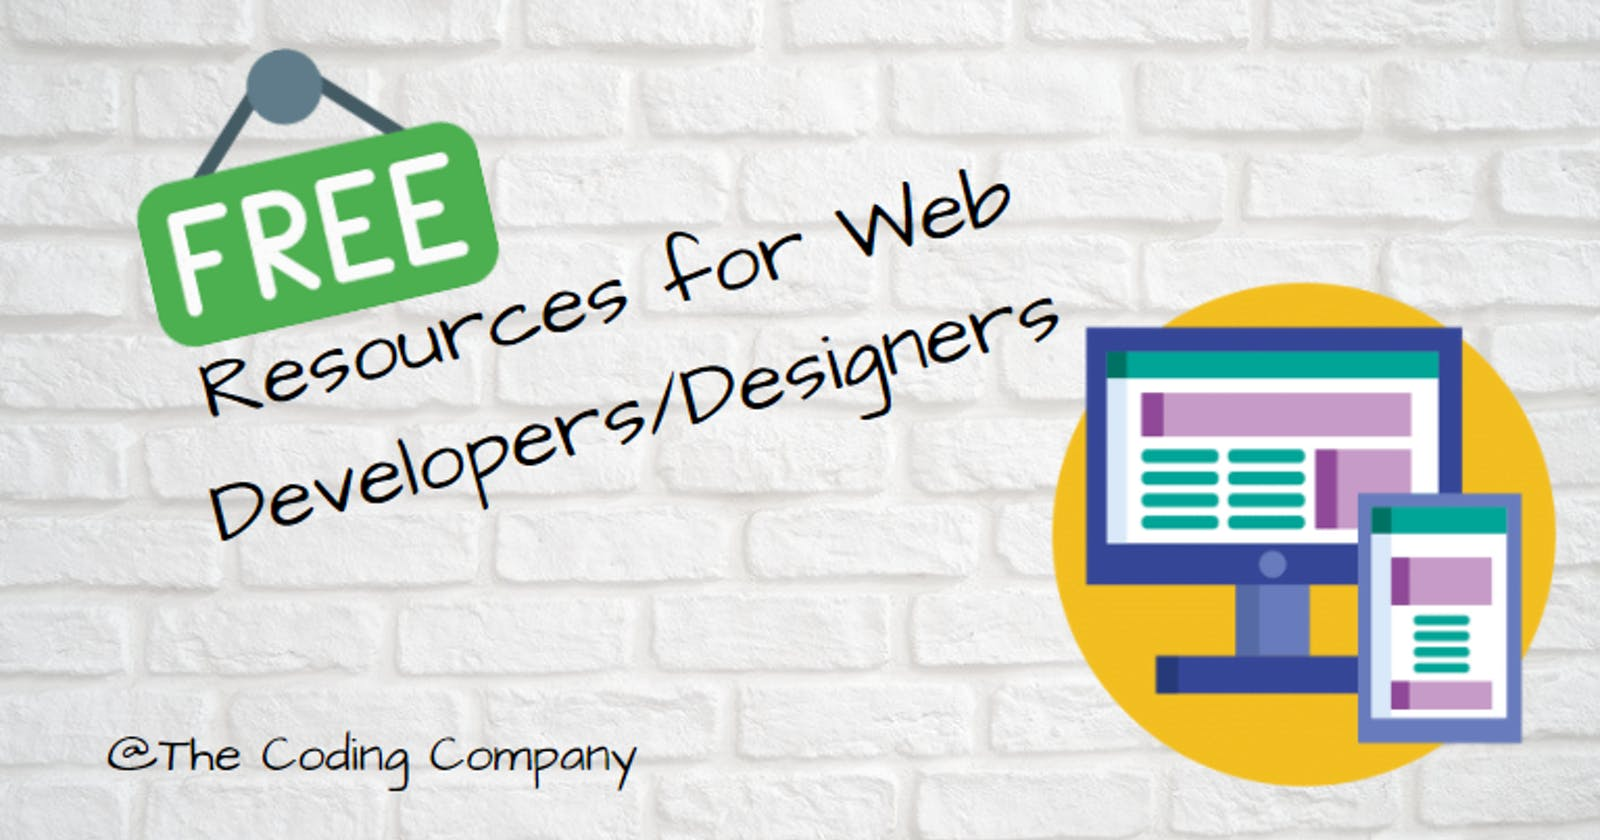 20+ Free Resources for Web Developers/Designers